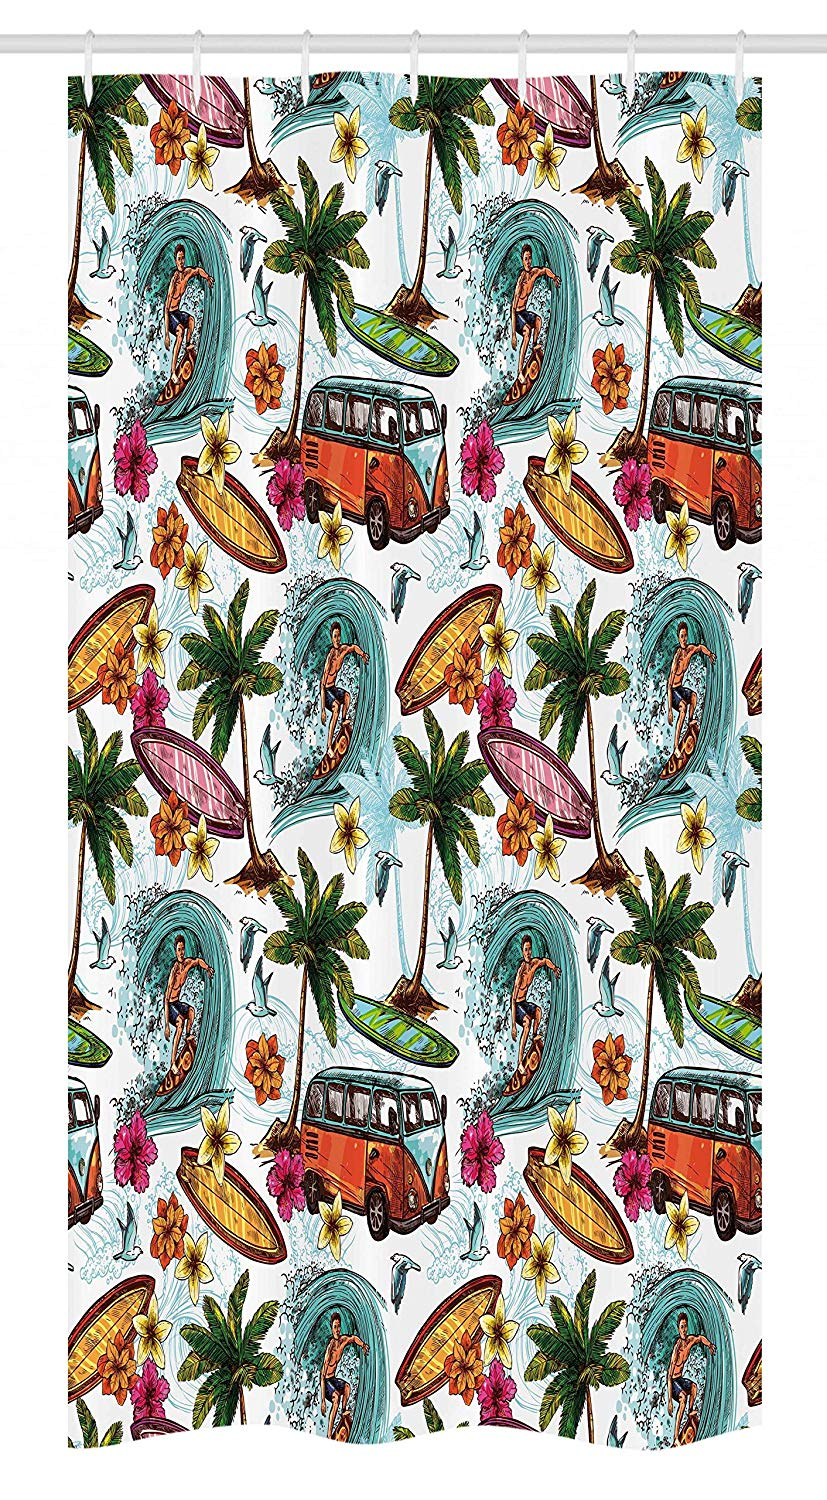 "Ambesonne Ocean Stall Shower Curtain, Hawaiian Surfer on Wavy Deep Sea Retro Style Palm Trees Flowers Surf Boards Print, Fabric Bathroom Decor Set with Hooks, 36"" X 72"", Multicolor"